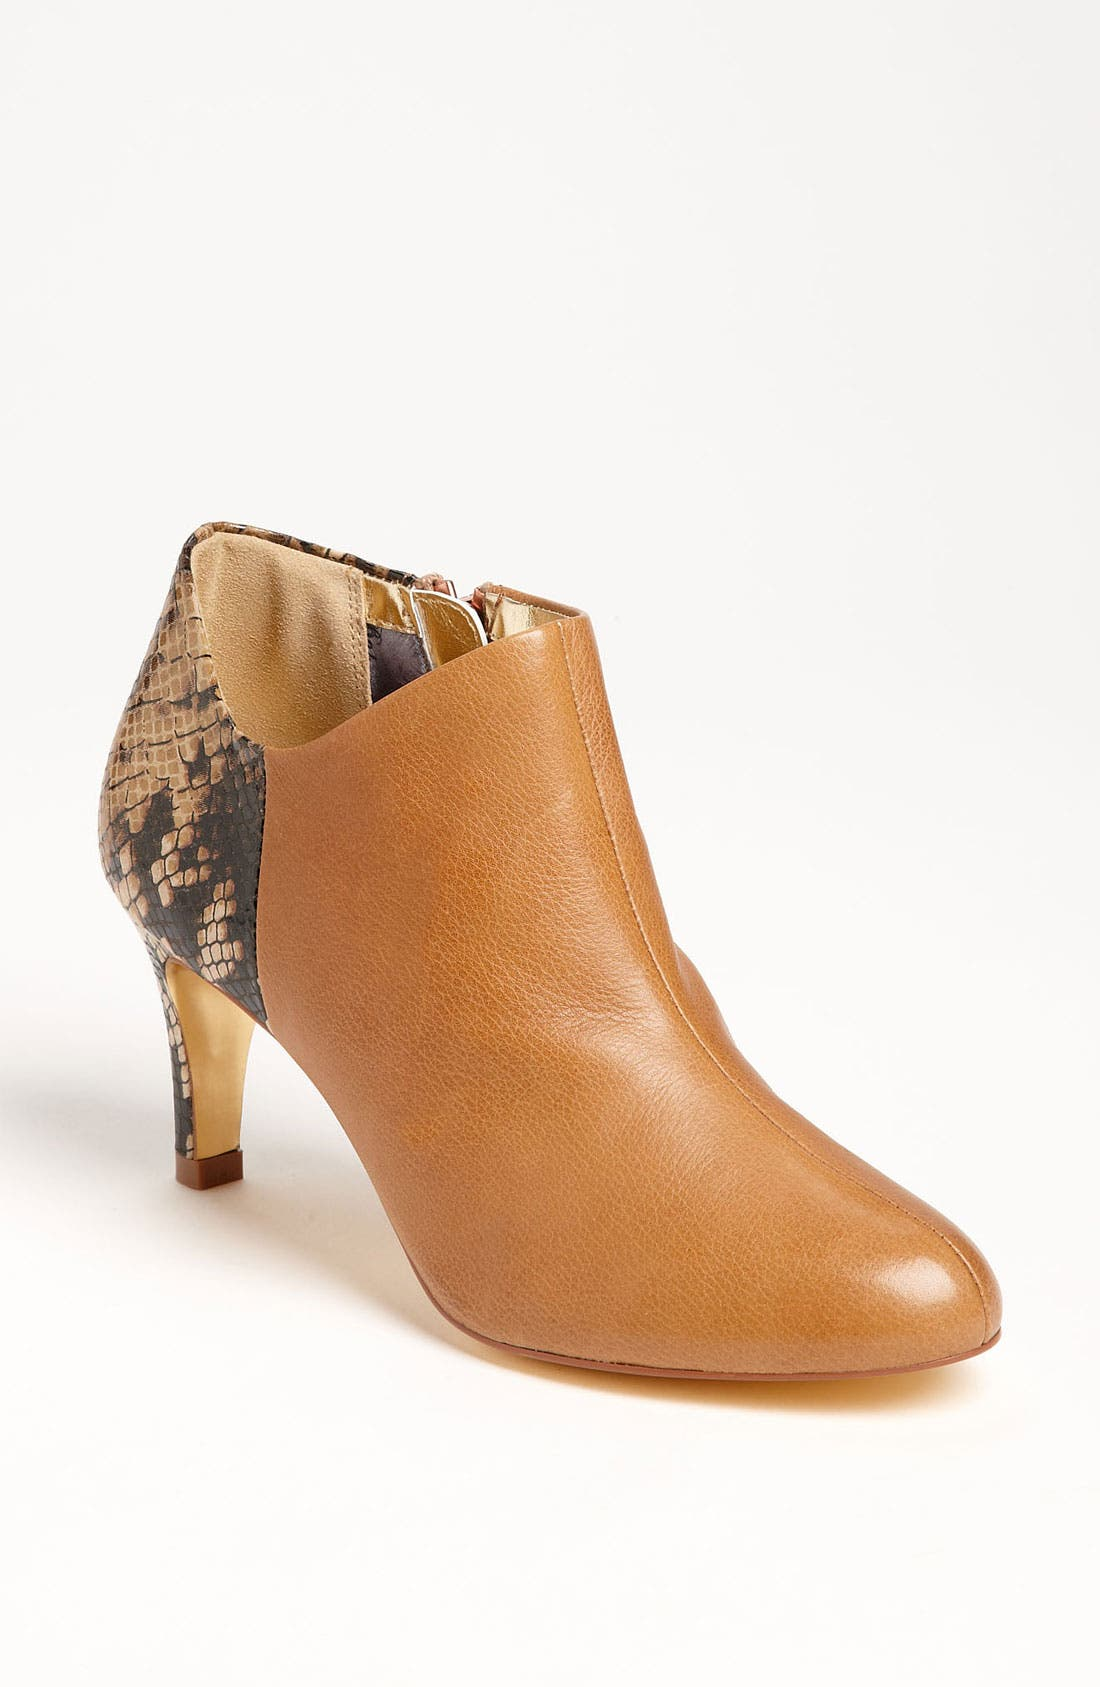 Alternate Image 1 Selected - Ted Baker London 'Caberi' Bootie